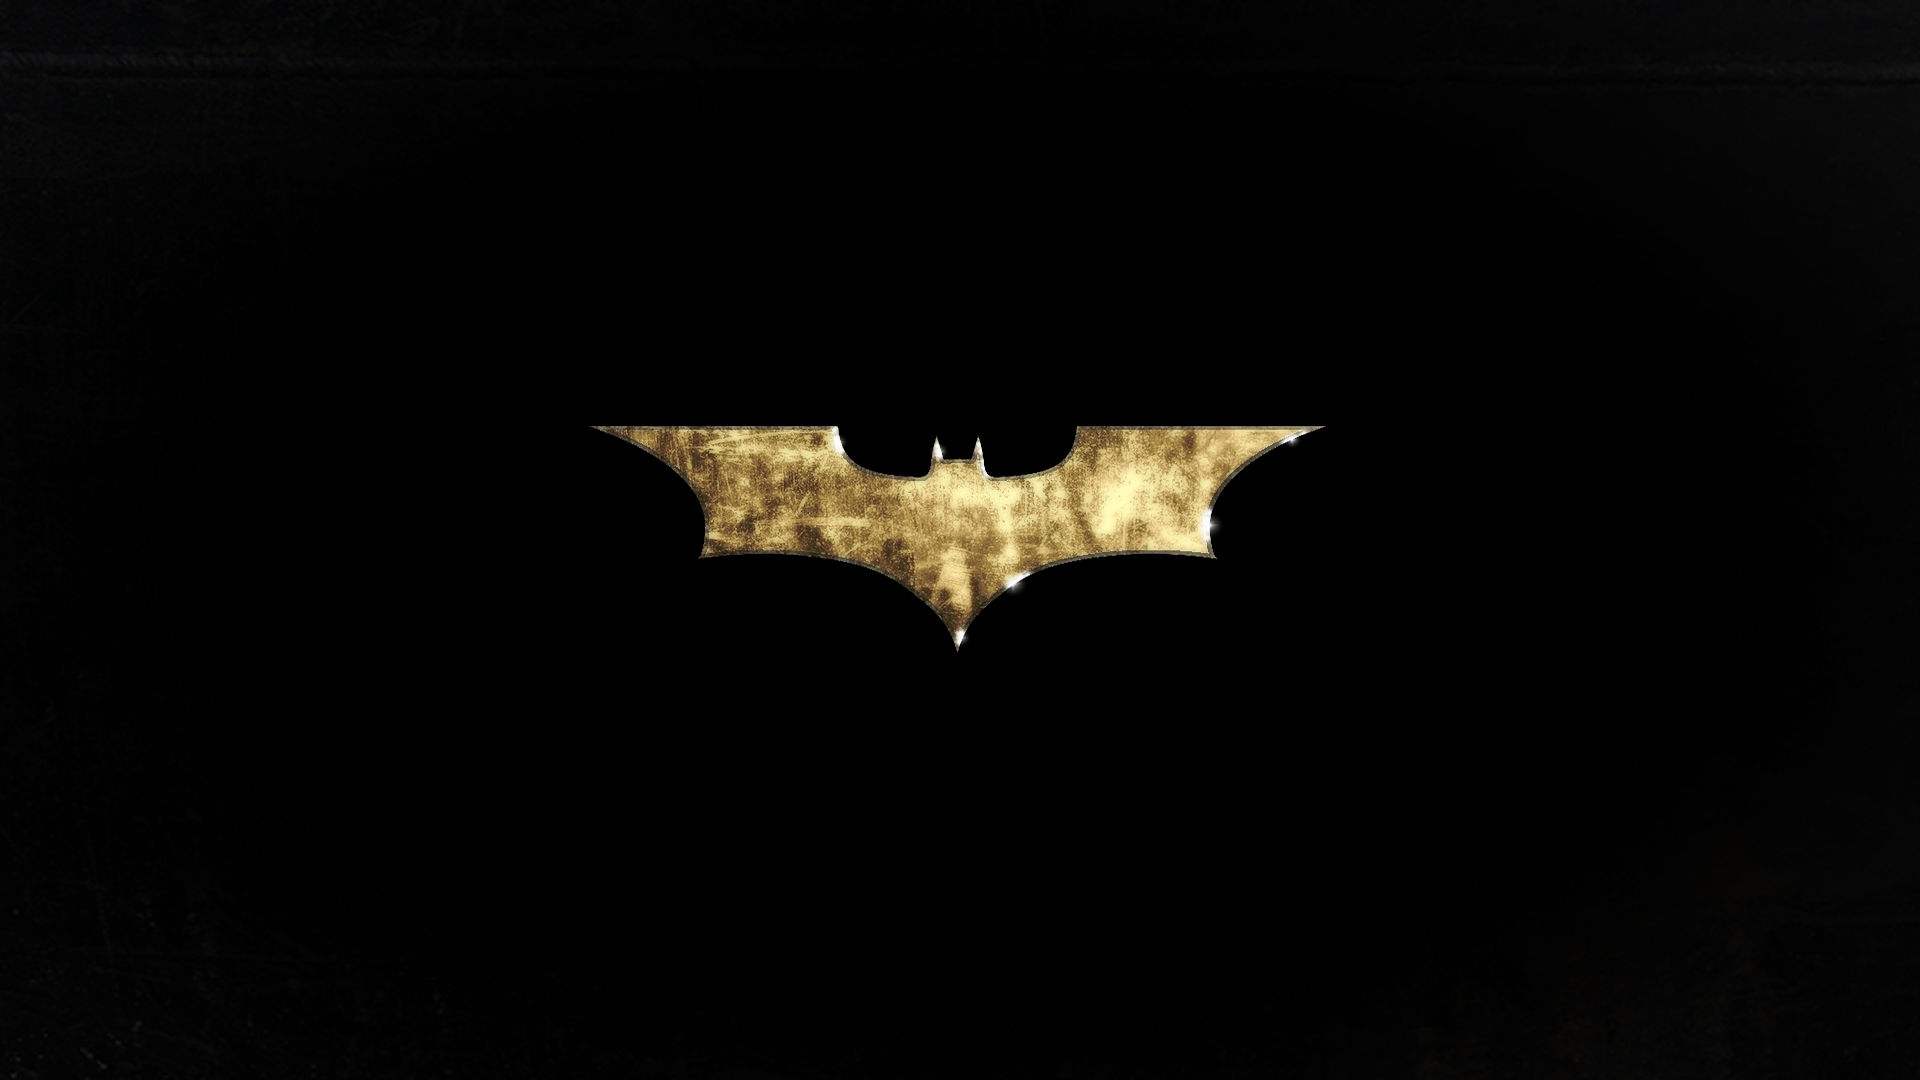 1920x1080 Grunge Batman Logo Desktop PC And Mac Wallpaper